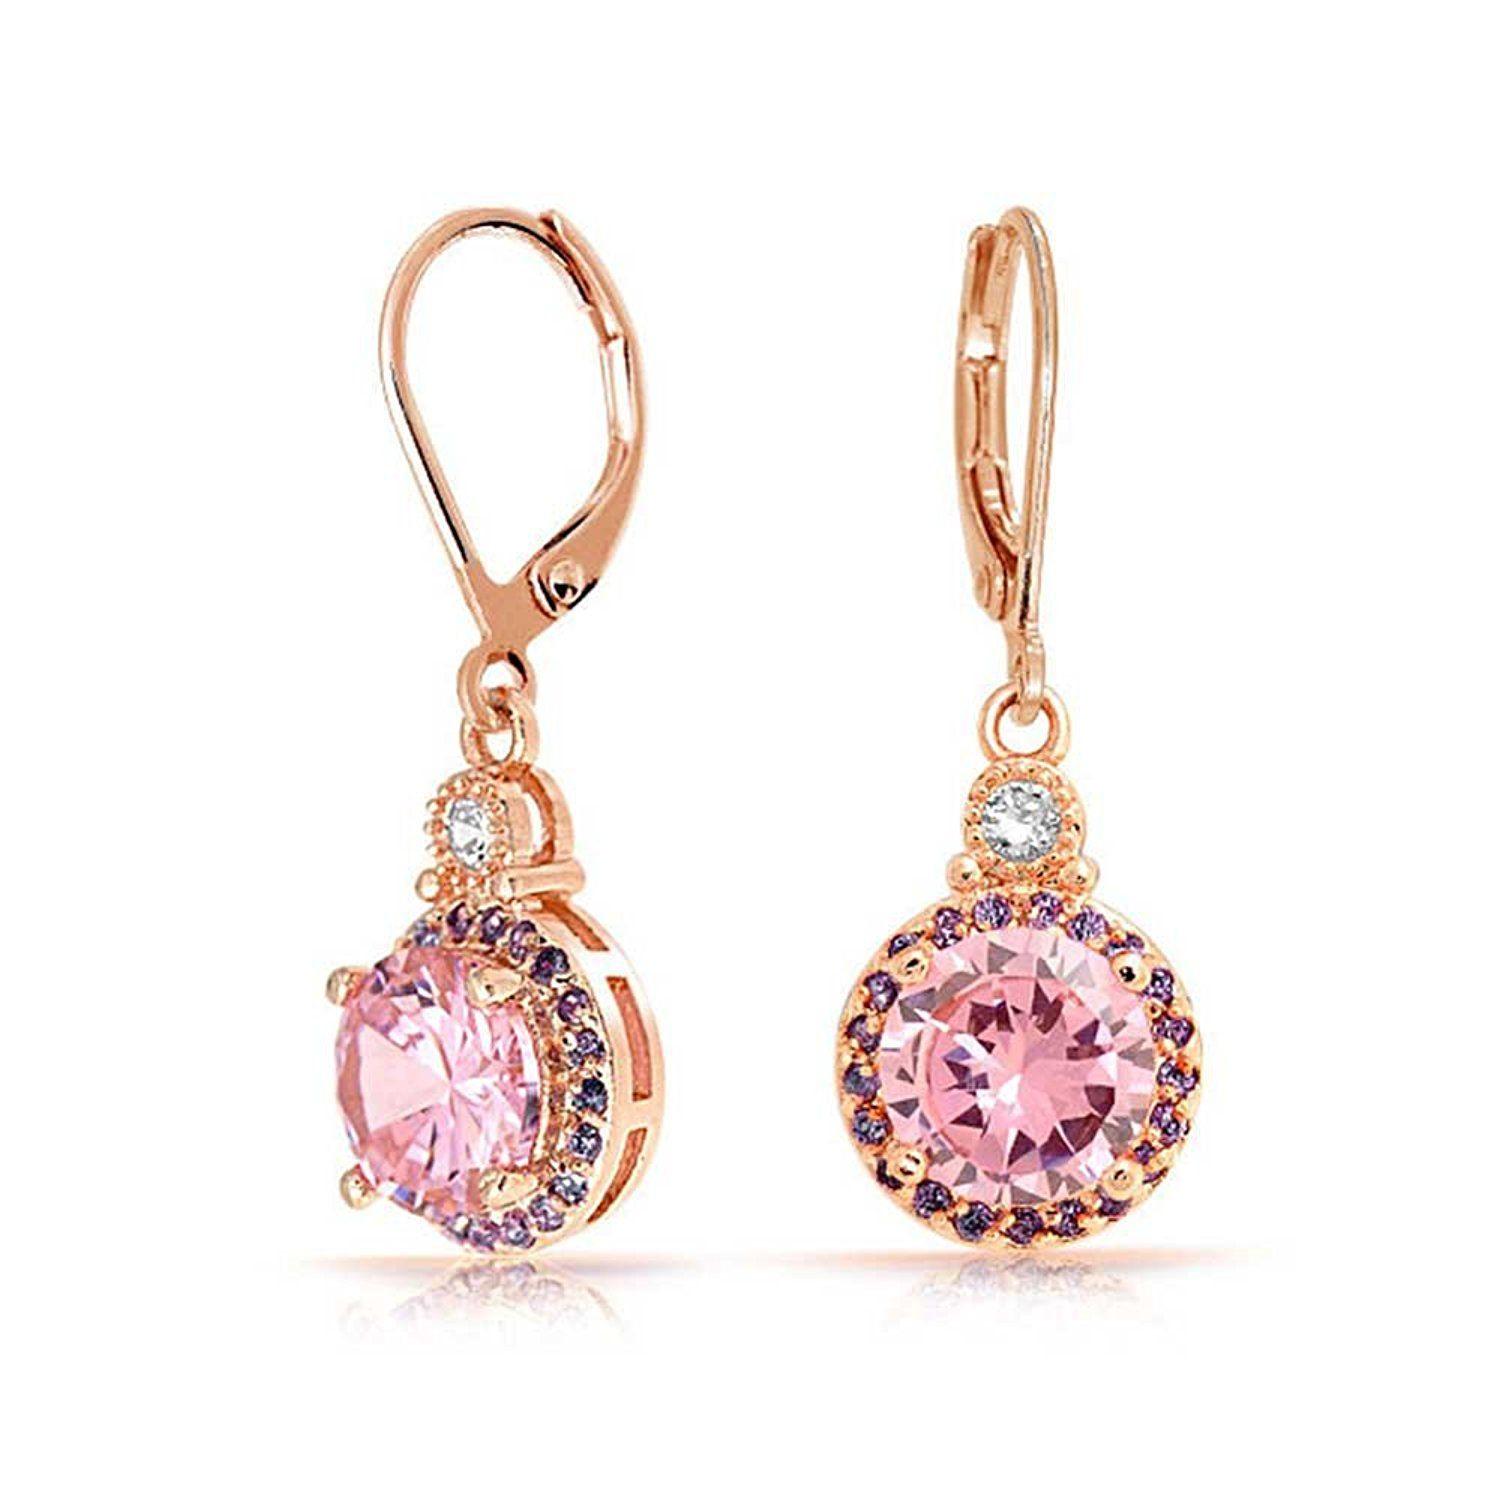 Bling Jewelry Round CZ Drop Rose Gold Plated Leverback Earrings pIfQK6wfNt